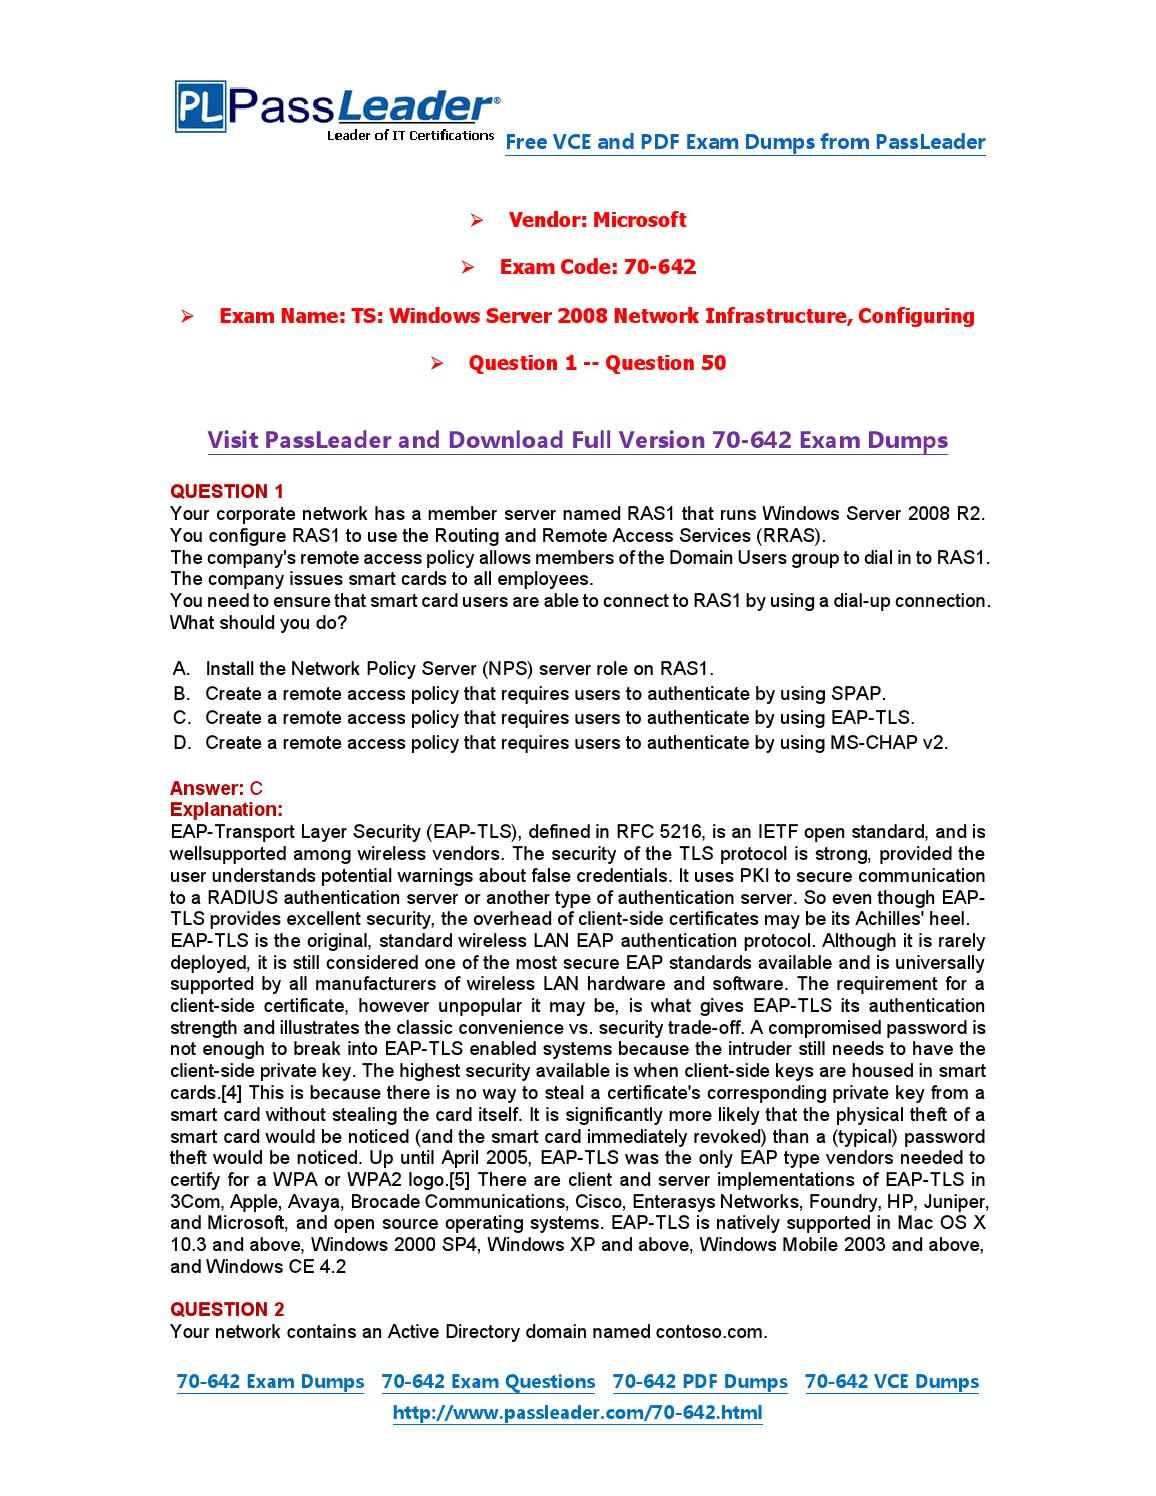 70-642 Exam Dumps with PDF and VCE Download (1-50) by PassLeader - issuu